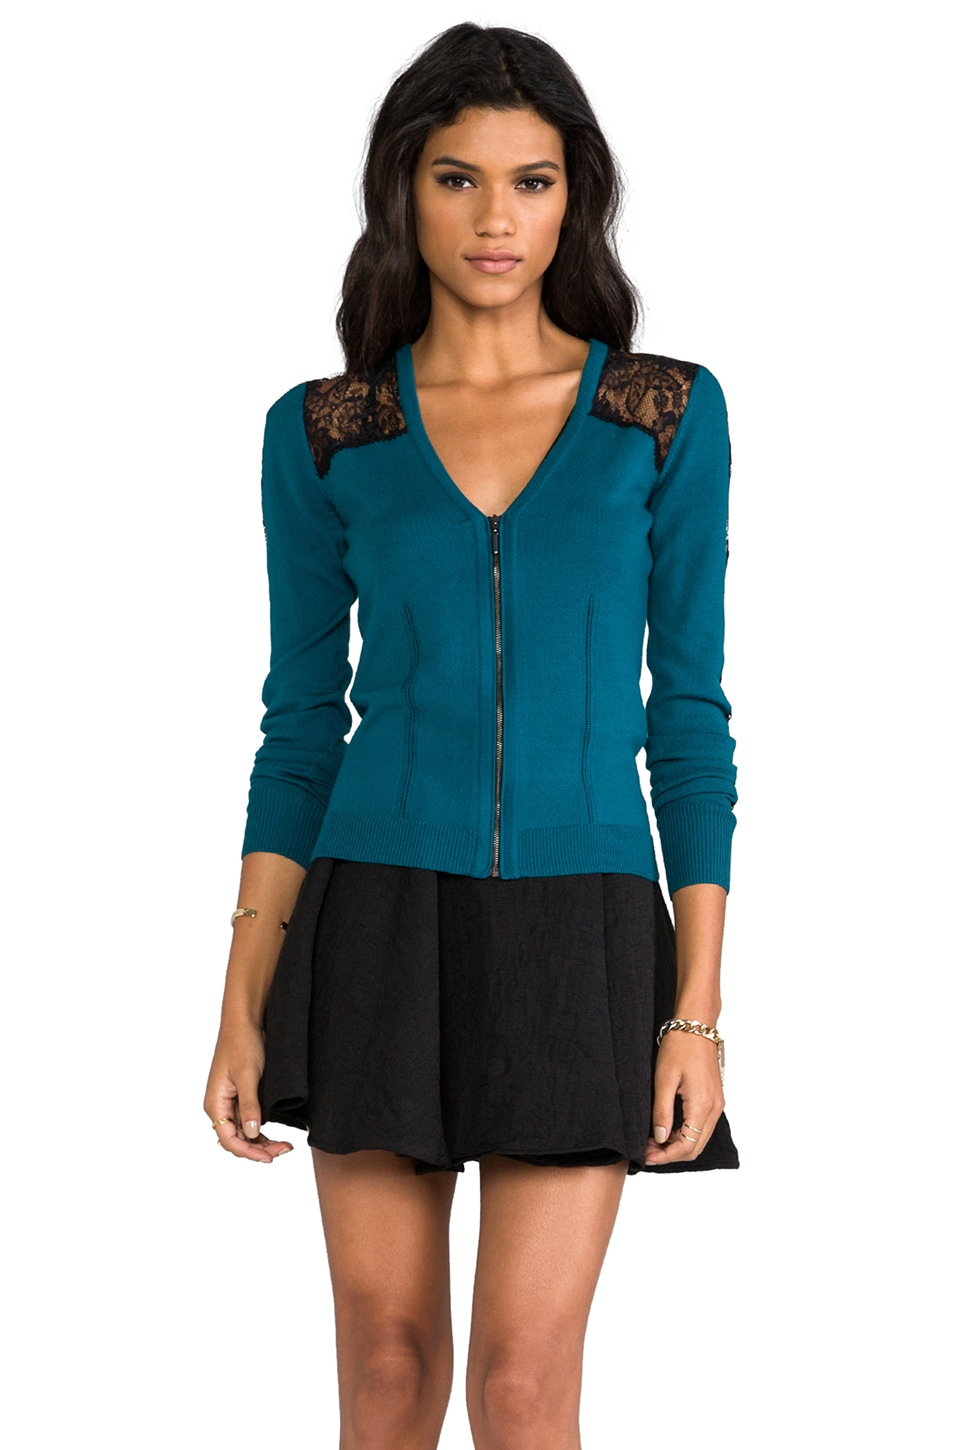 Nanette Lepore Conversations Knit Cardi in Turquoise